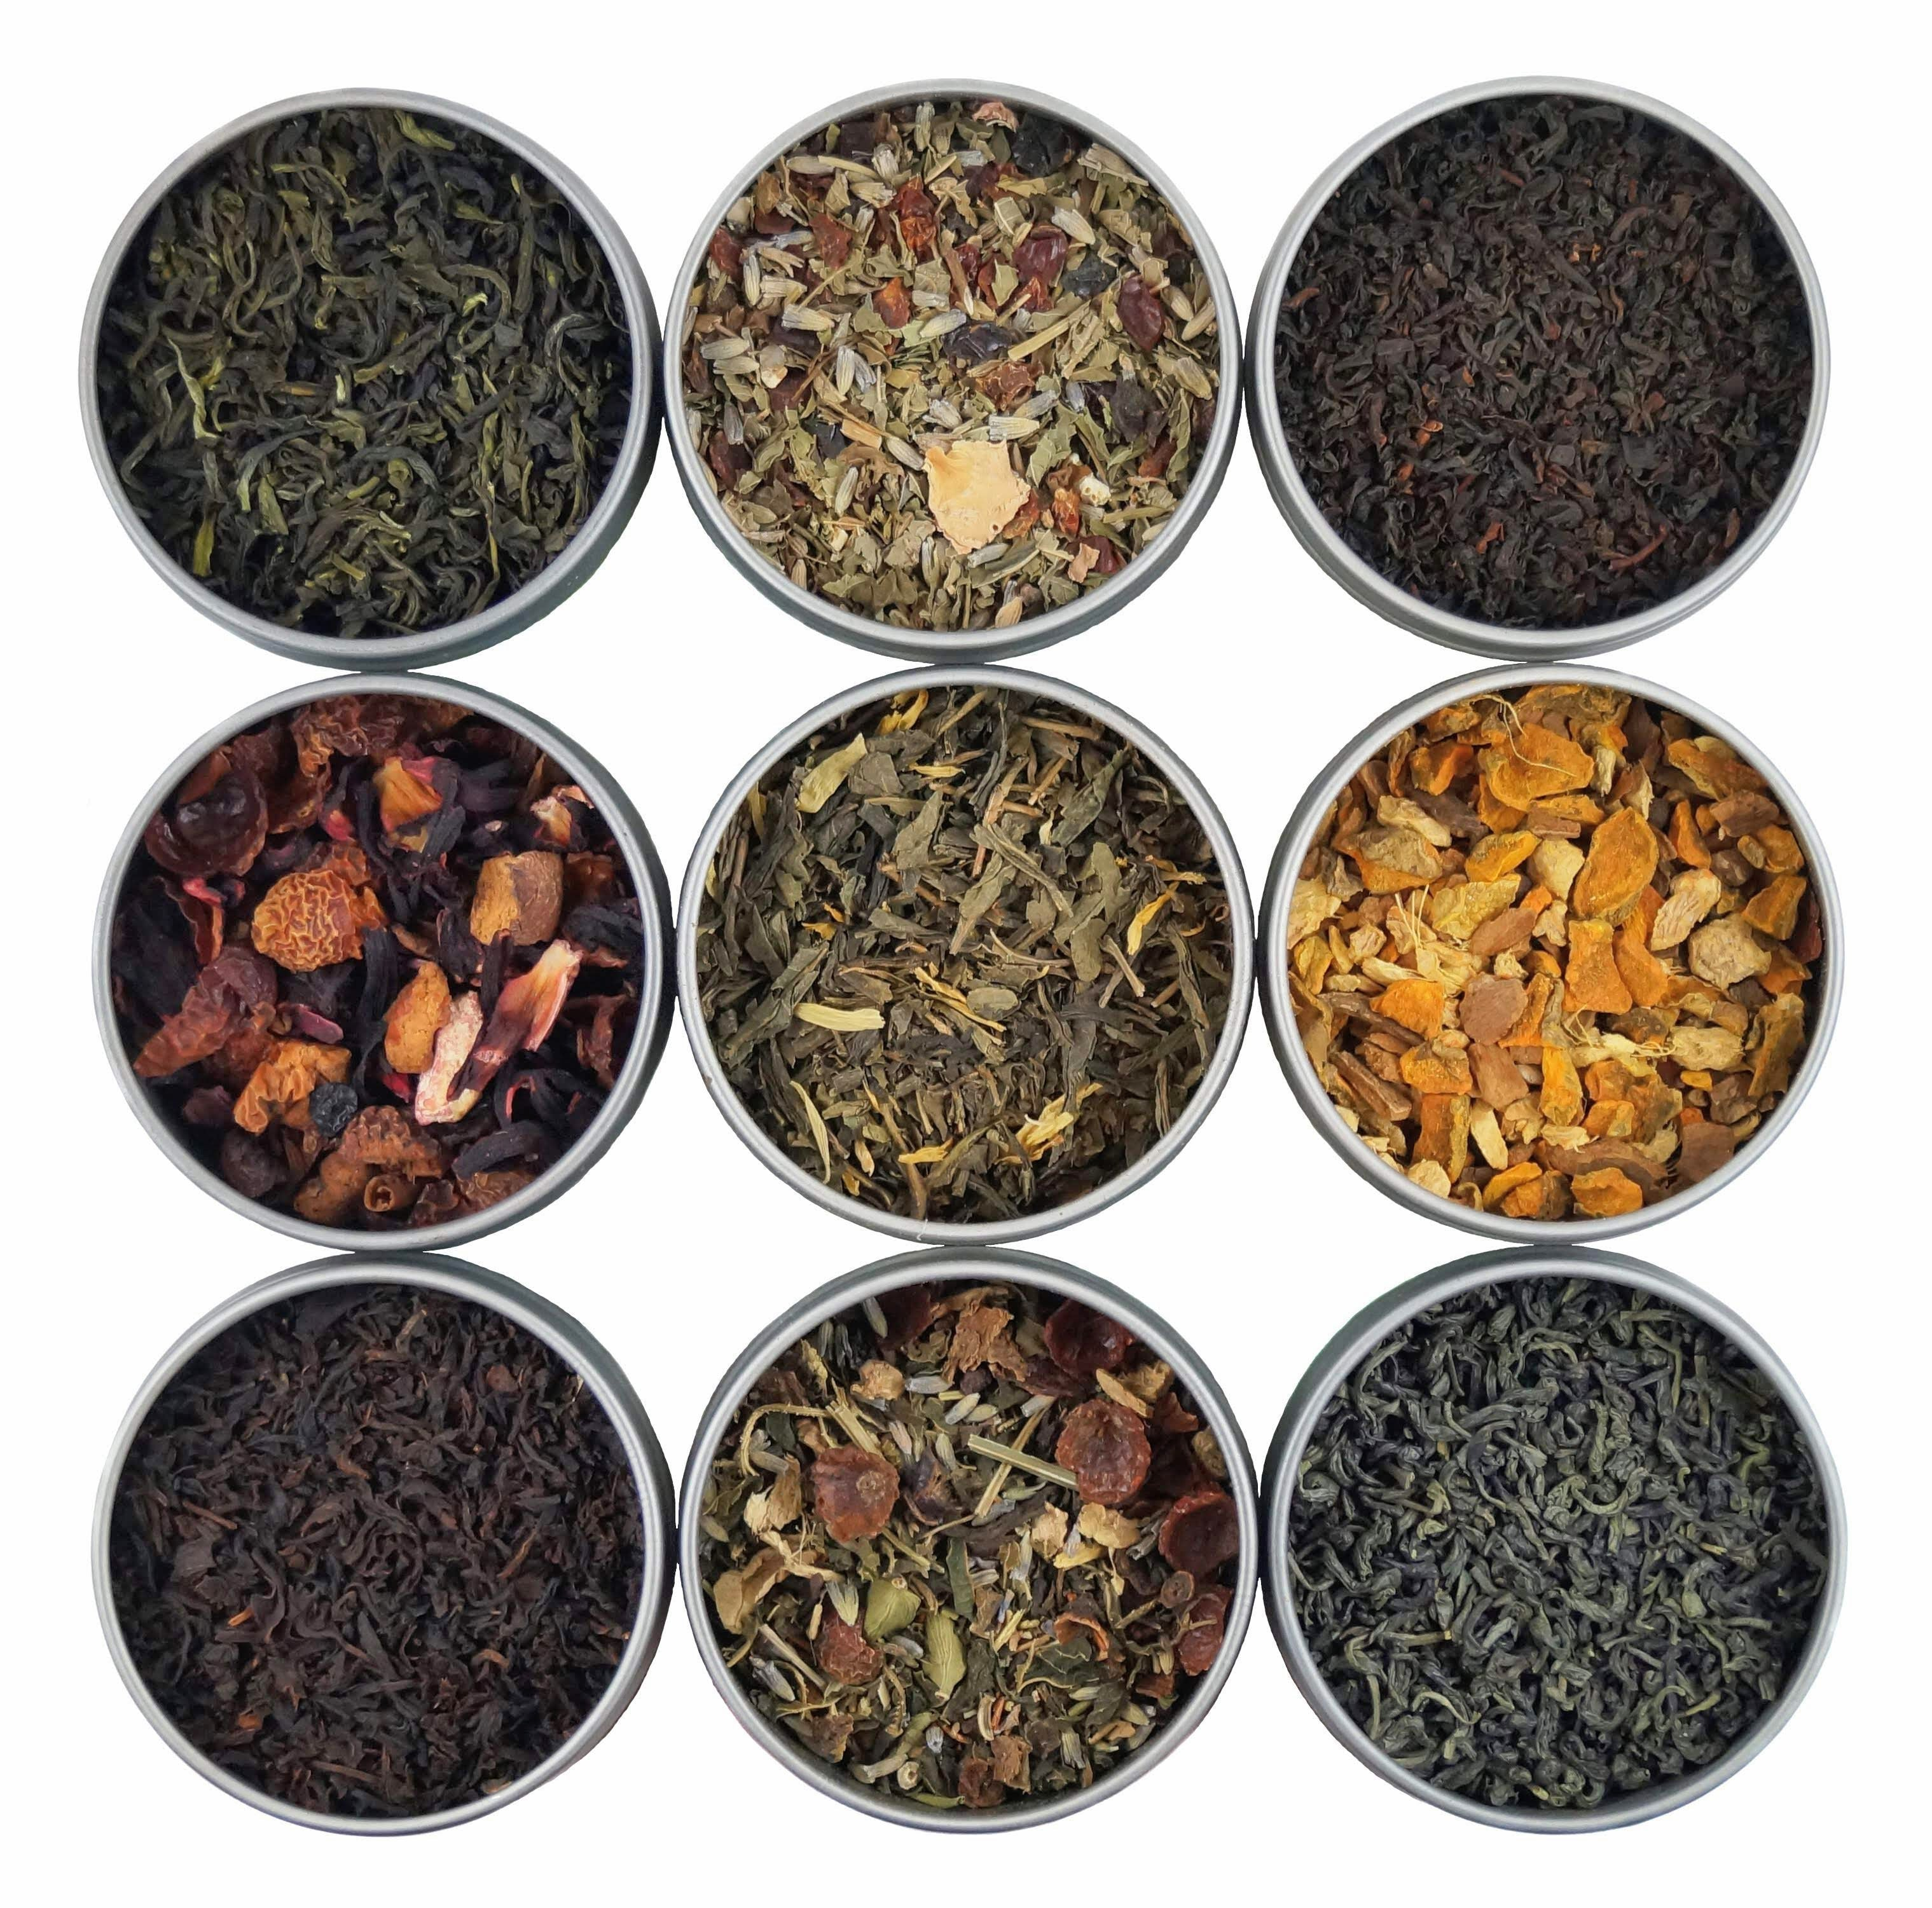 Tea Samplers - Loose Leaf Tea Samplers  - Tea Sampler Gift Sets - Try a Variety of Flavors & Tea Types - Heavenly Tea Leaves